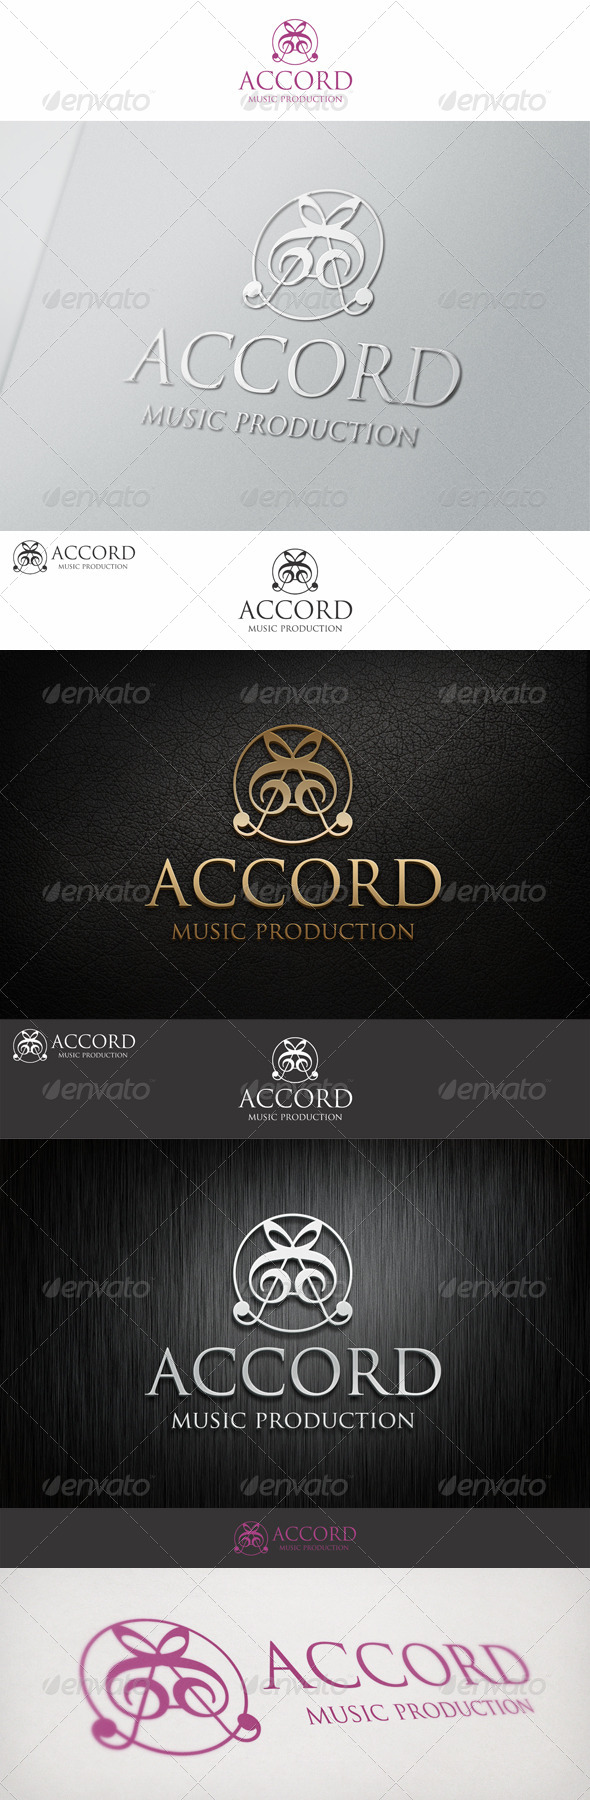 GraphicRiver A Letter Accord Music Production 6838481